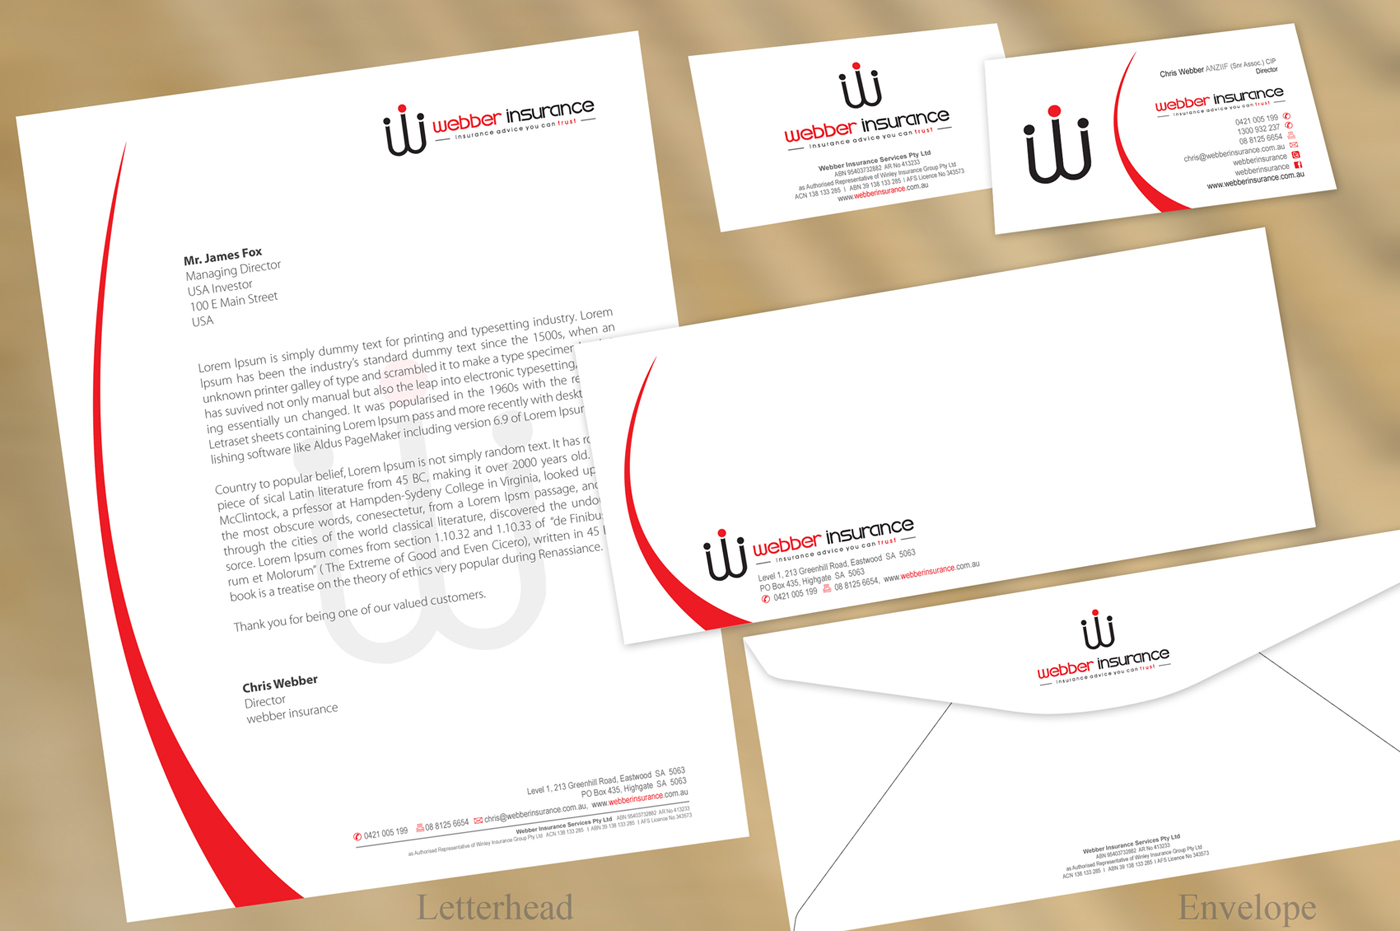 Modern professional letterhead design for webber insurance letterhead design by asimali for letterhead design project design 612426 spiritdancerdesigns Image collections